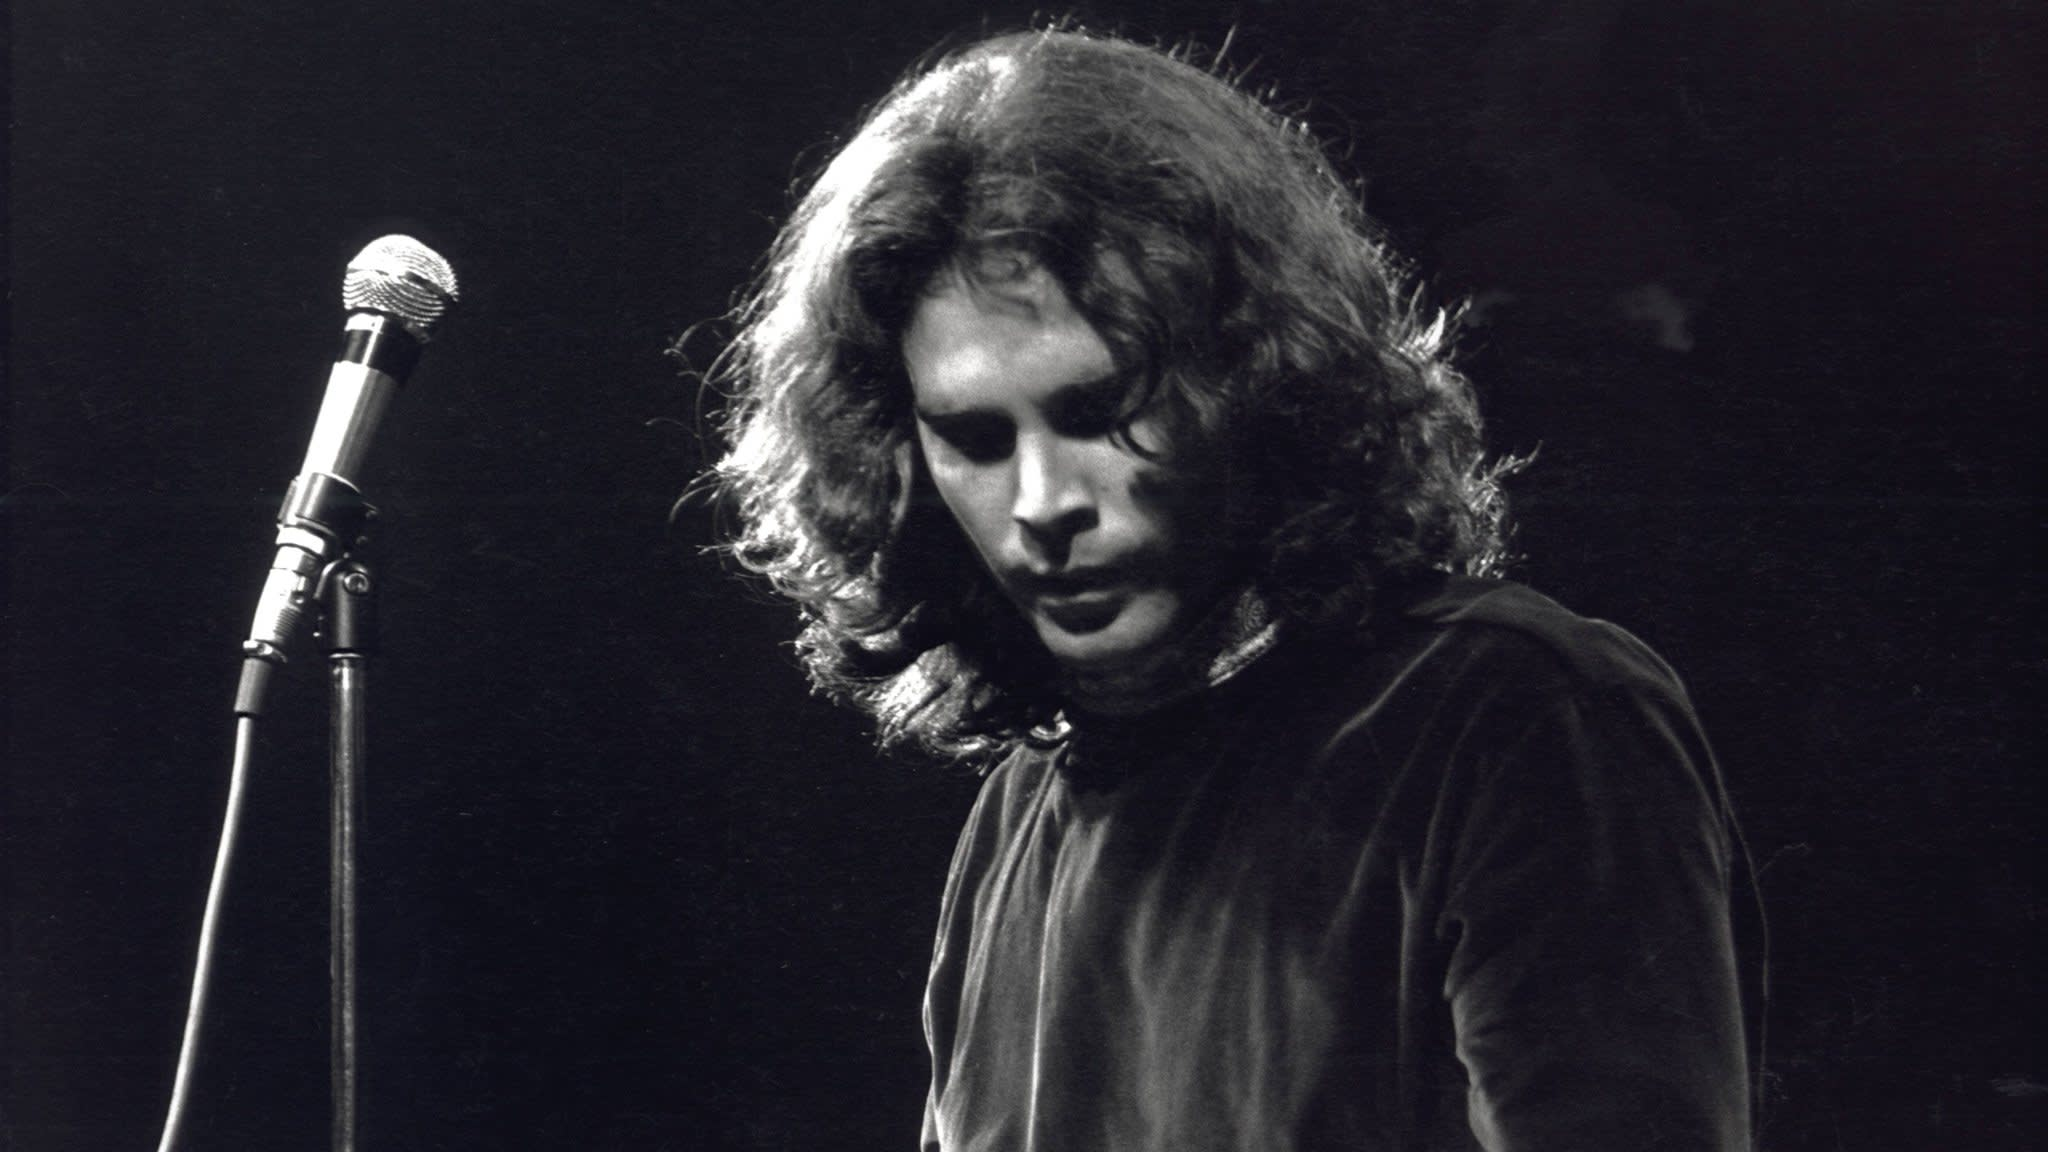 Light My Fire A Counterculture Beacon Embraced By The Mainstream Tpac Some Rca Converter Wiring Diagram Jim Morrison In 1968